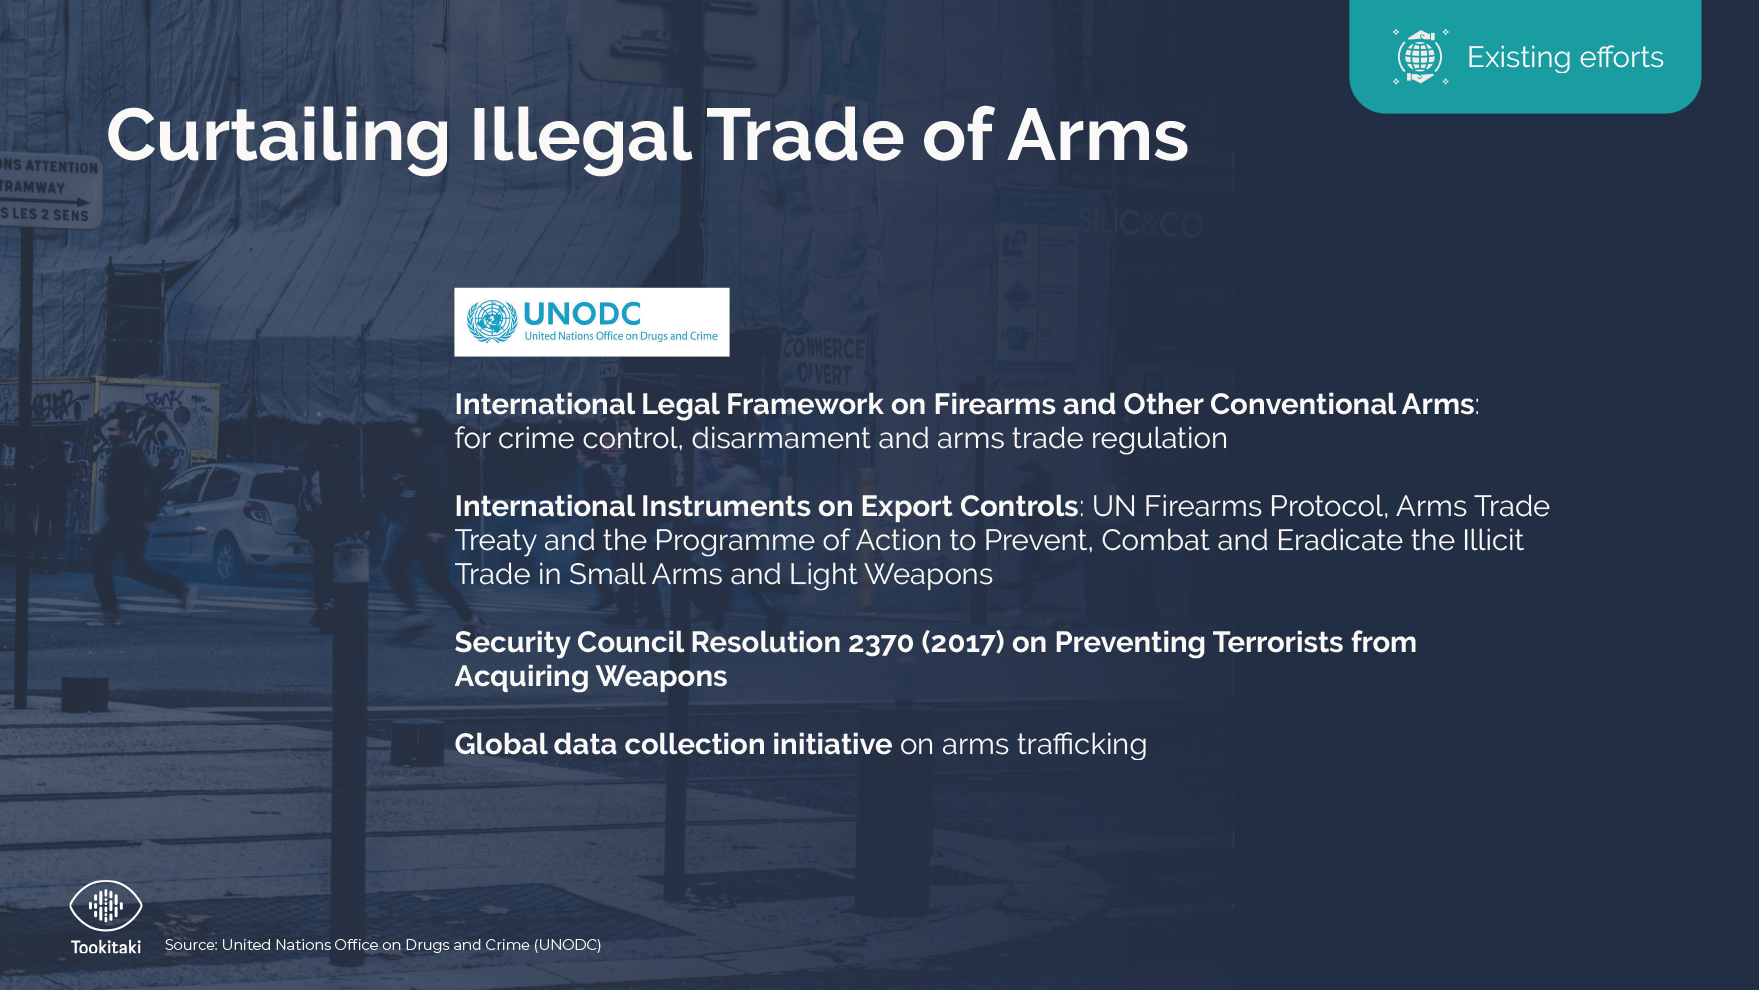 Curtailing Illegal Trade of Arms